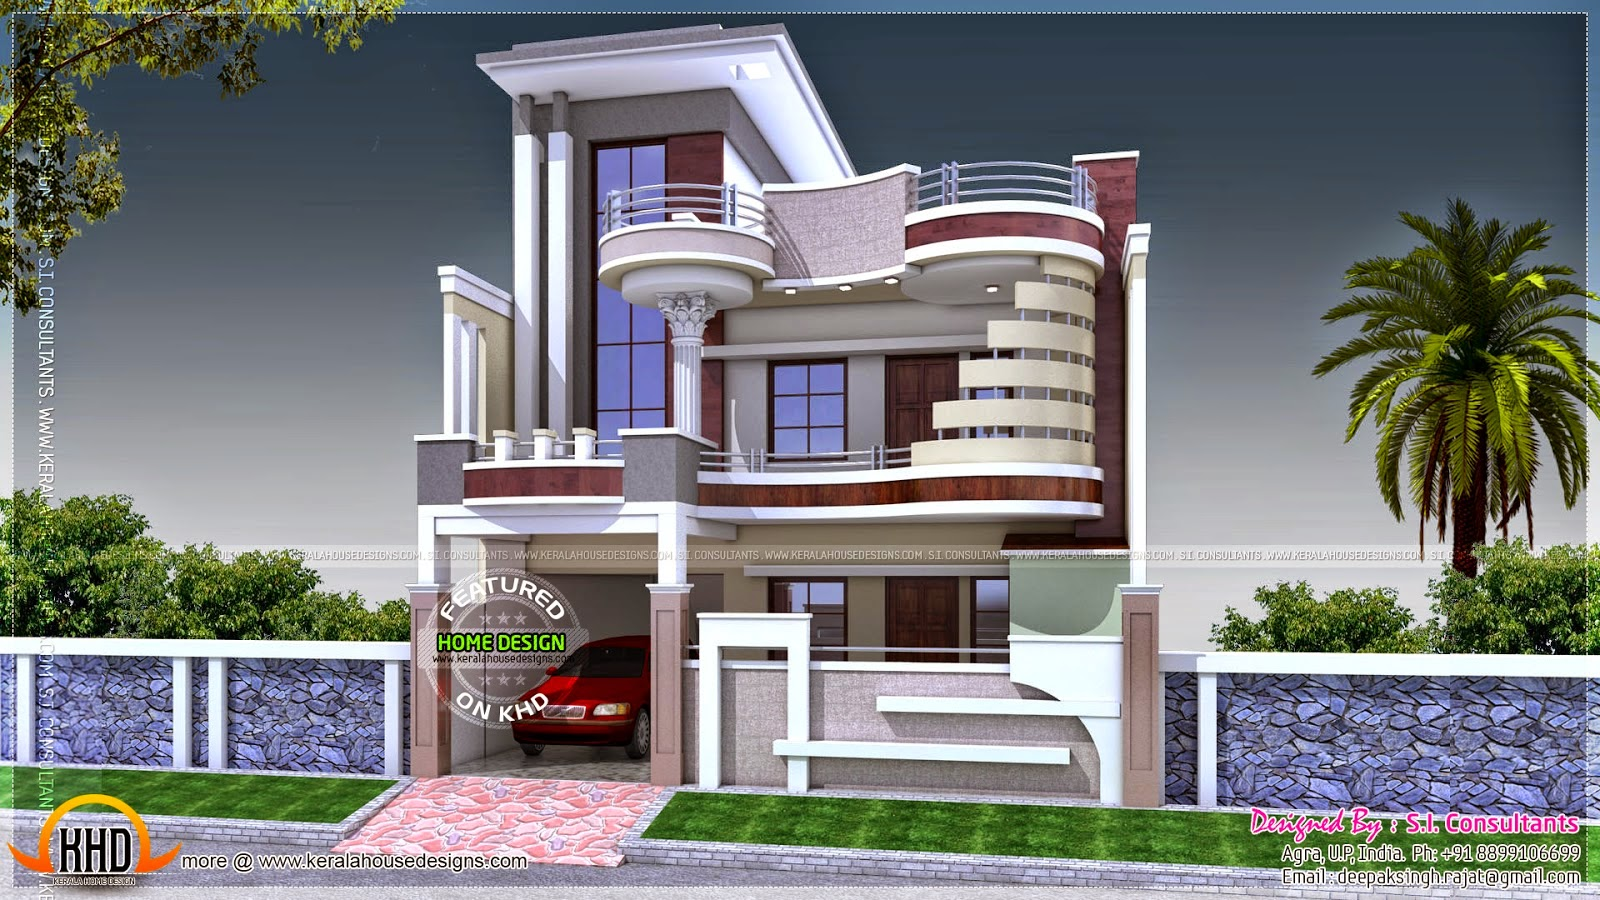 Tropicalizer indian house design for Architectural plans for houses in india